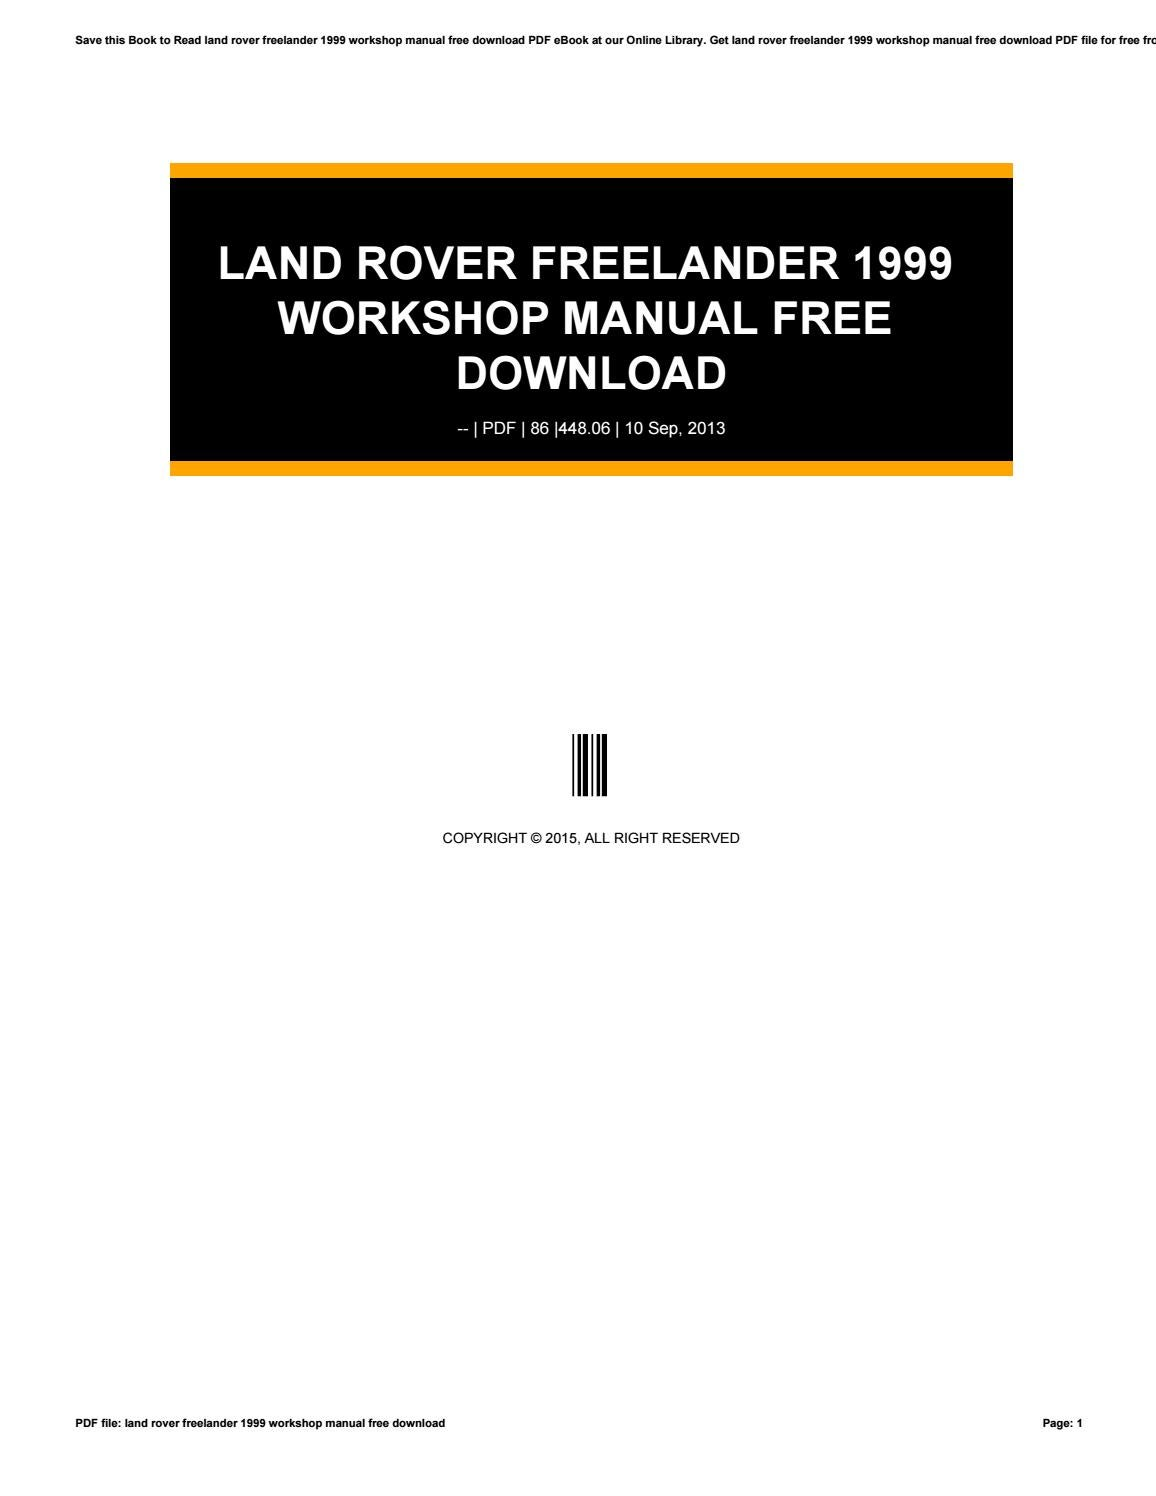 ... Array - manual de land rover discovery en espa c3 b1ol professional  user rh gogradresumes com